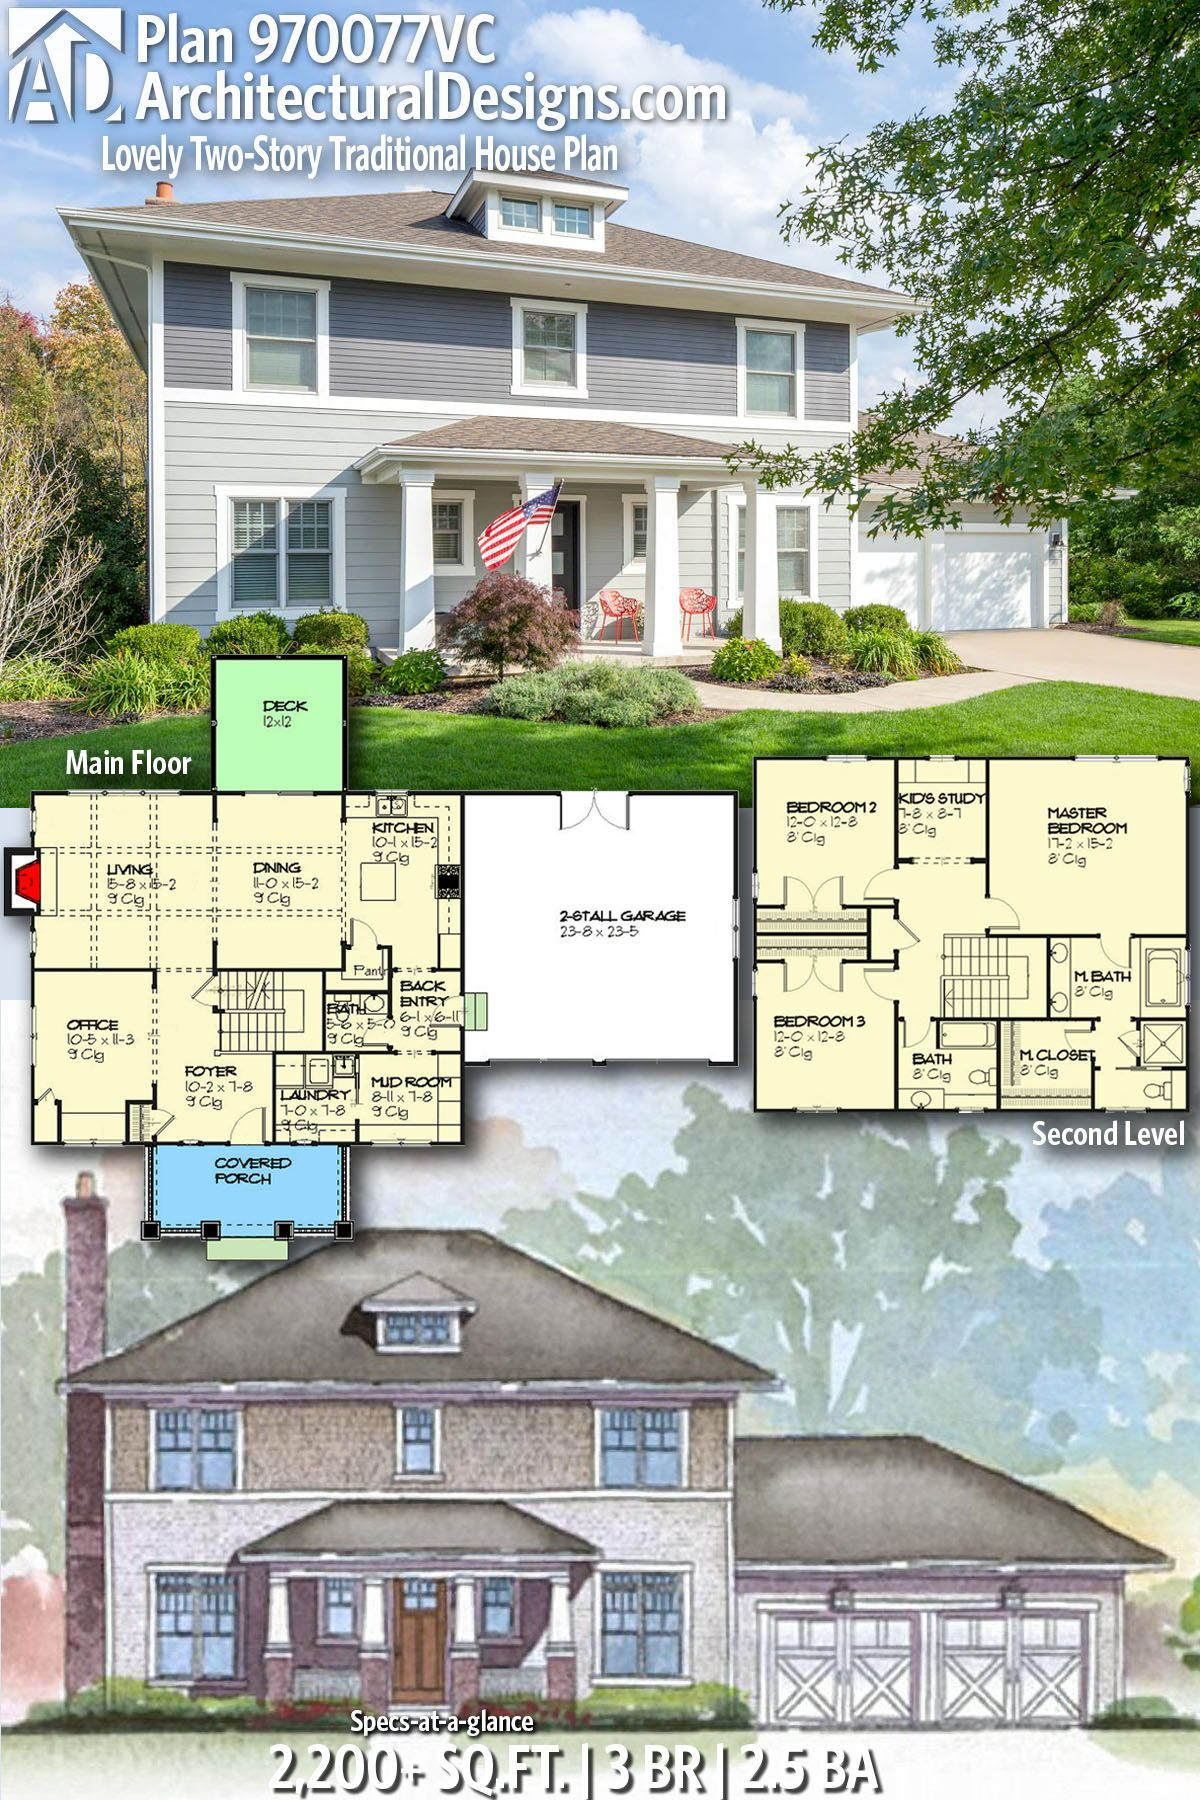 Plan 970077VC Lovely TwoStory Traditional House Plan